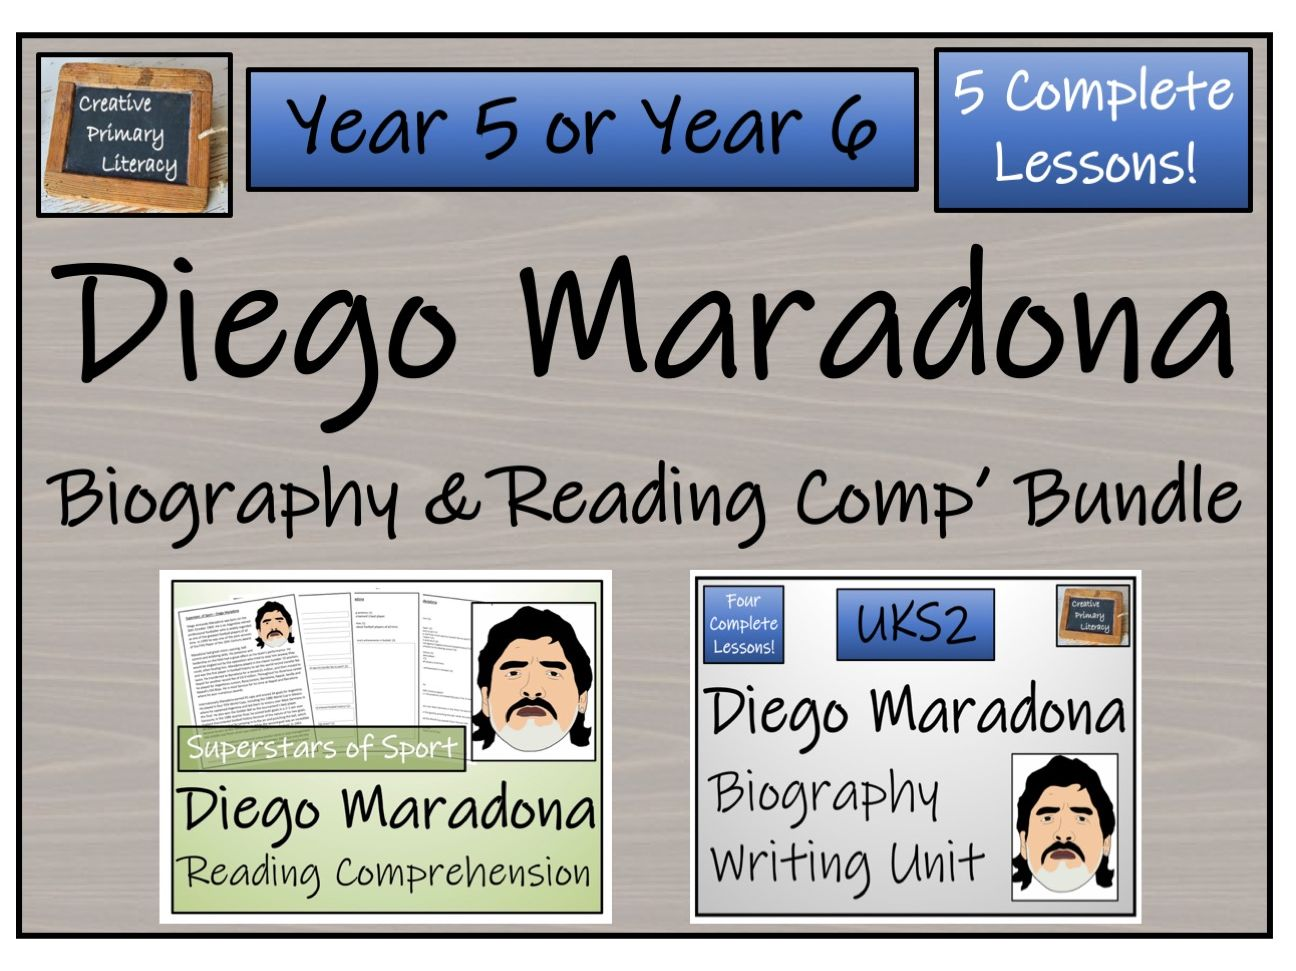 UKS2 Literacy - Diego Maradona Reading Comprehension & Biography Bundle